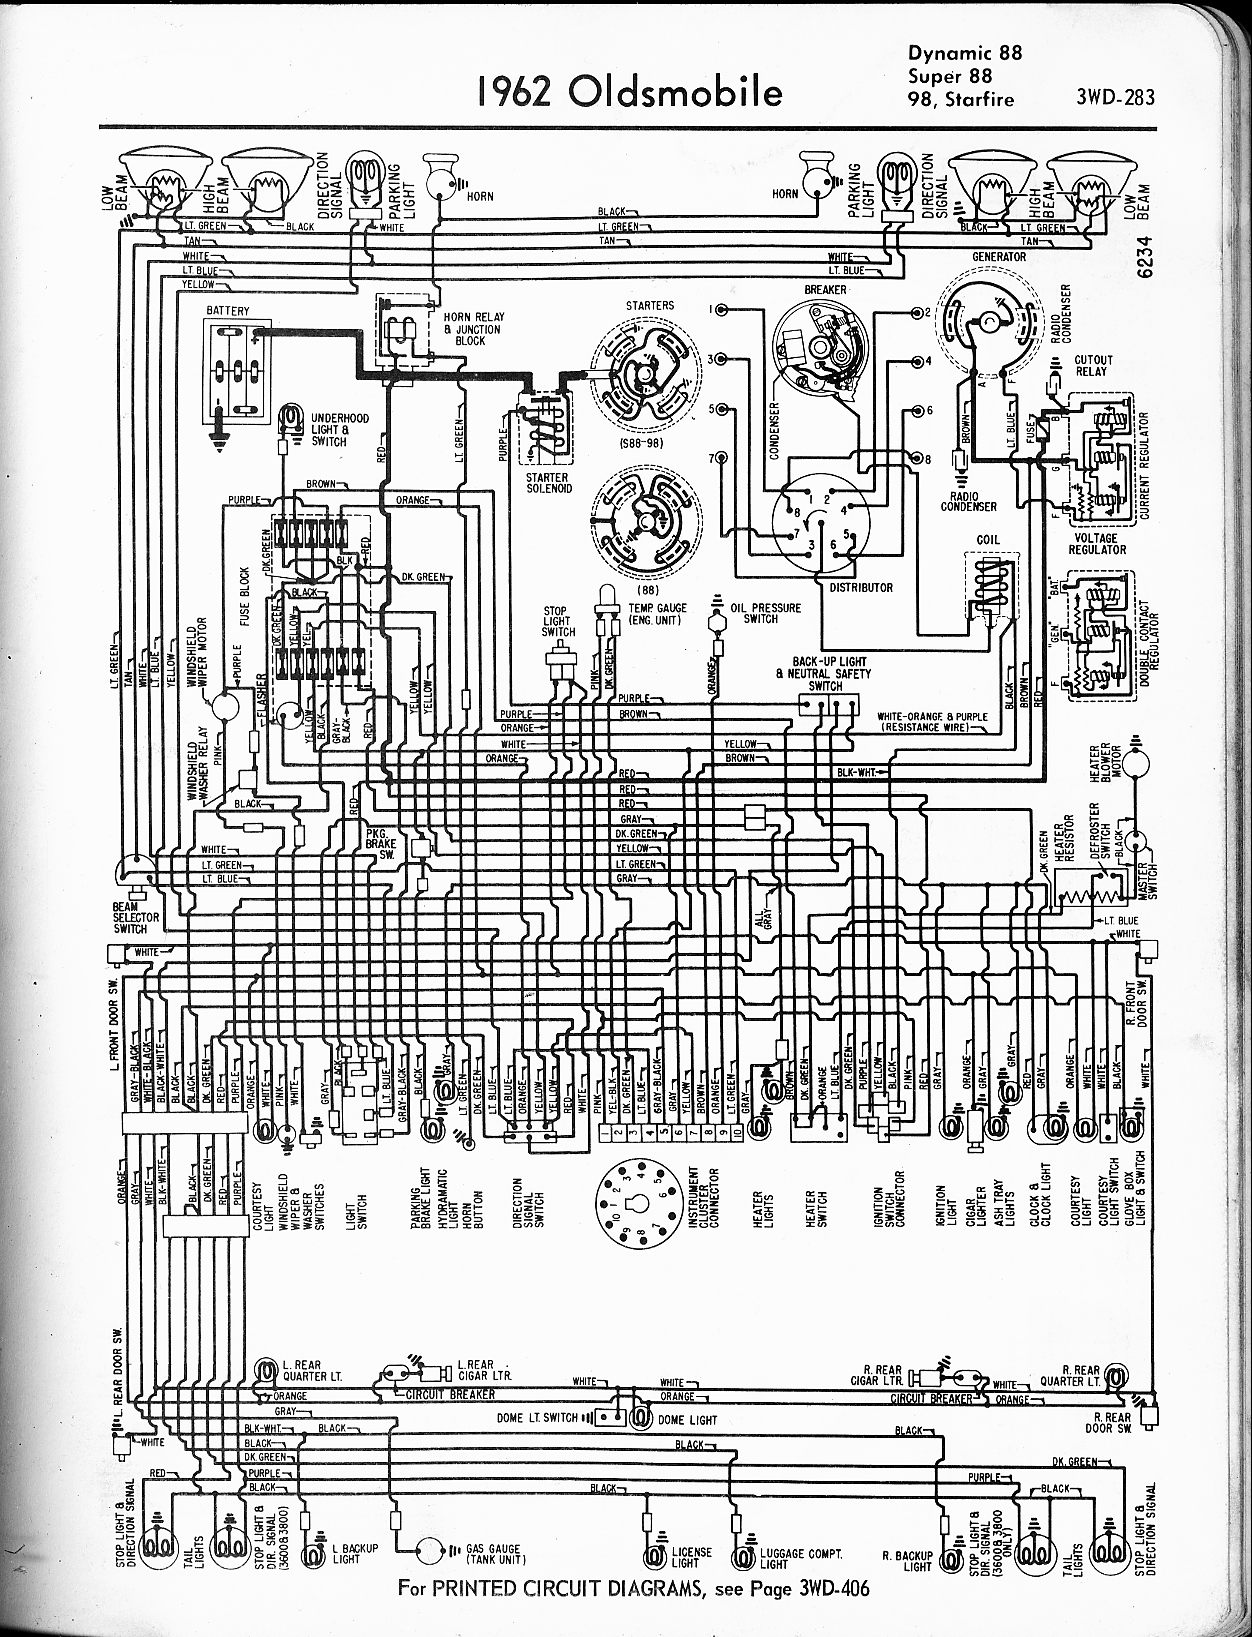 Delta 88 Wire Diagram Schematics Wiring Diagrams Manual Boeing Oldsmobile The Old Car Project Rh Oldcarmanualproject Com 3 Phase Band Saw